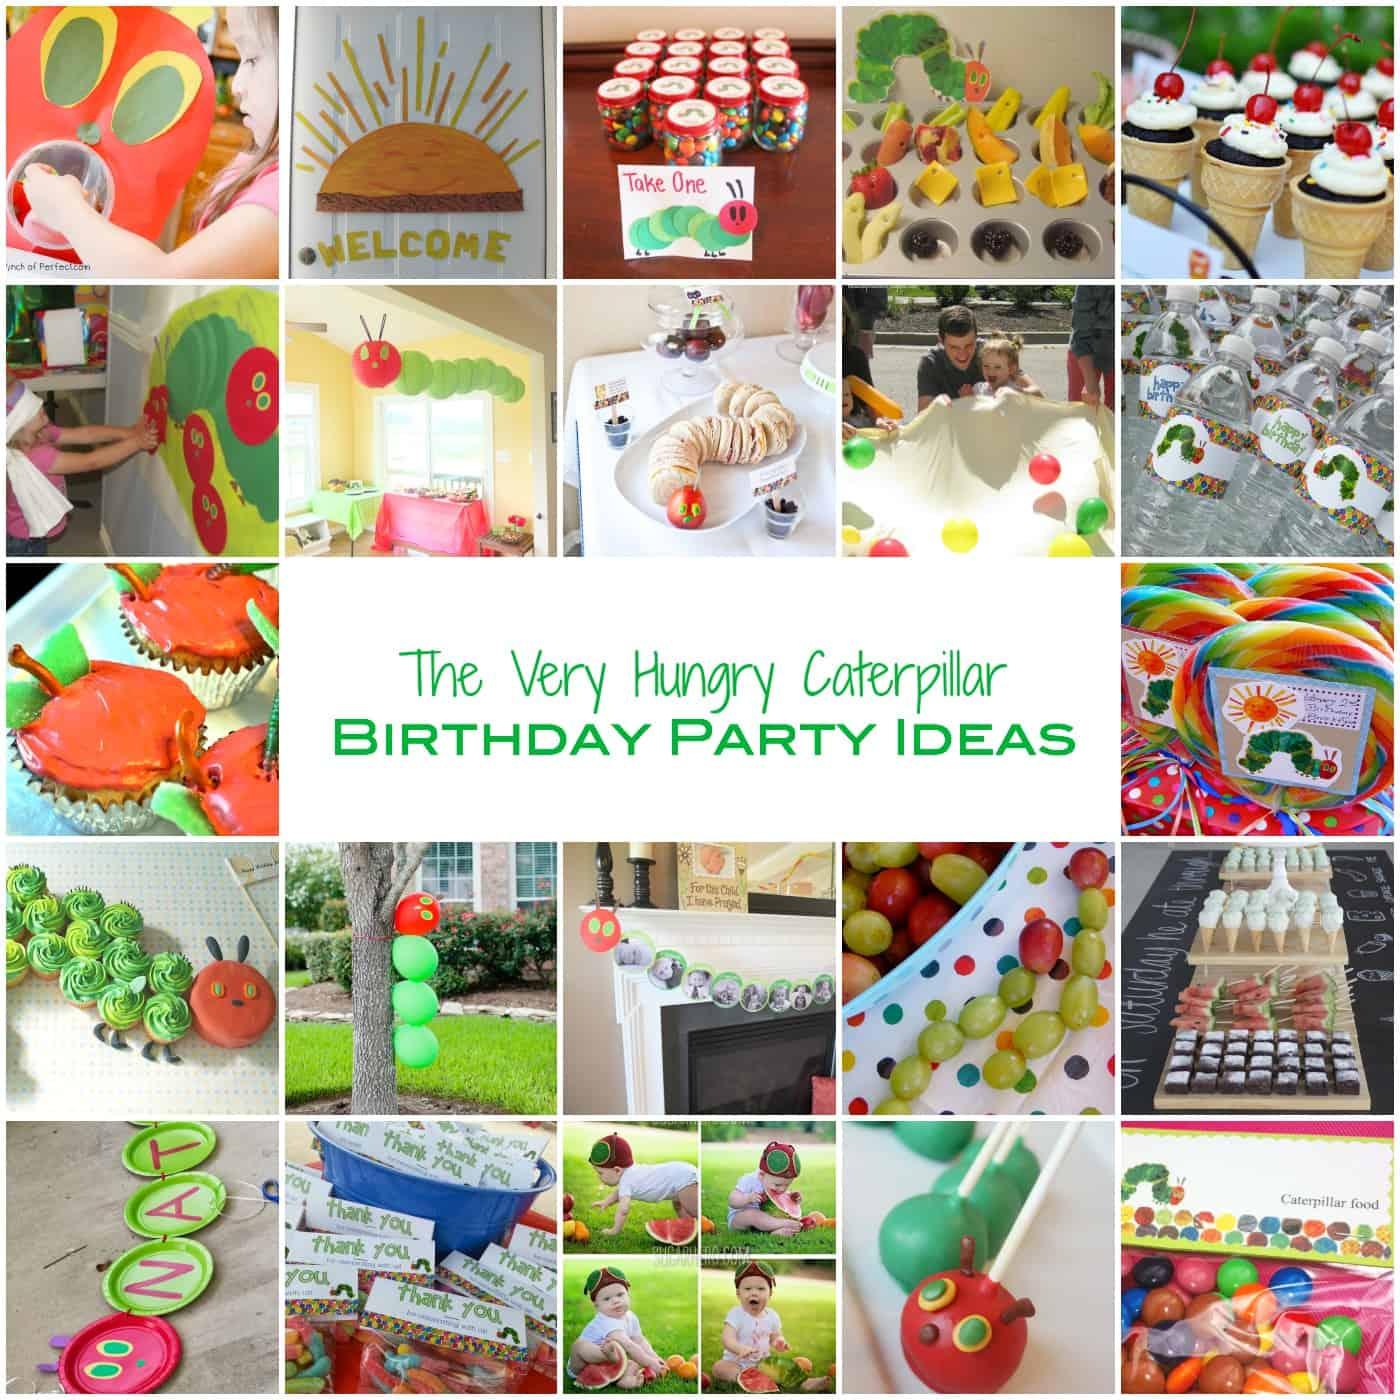 Have A Hungry Caterpillar Party!